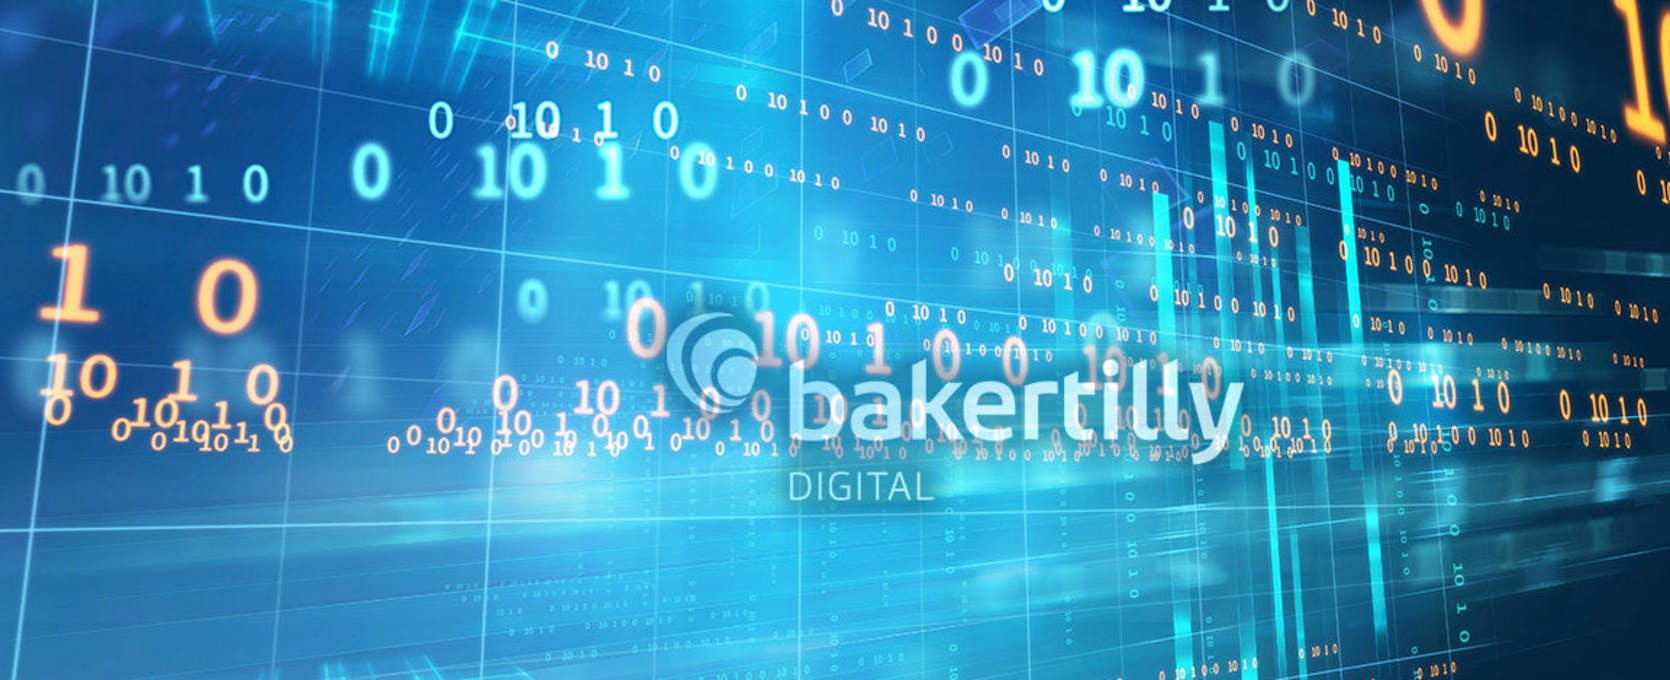 Baker Tilly Digital help clients derive value from data through analytics and technology